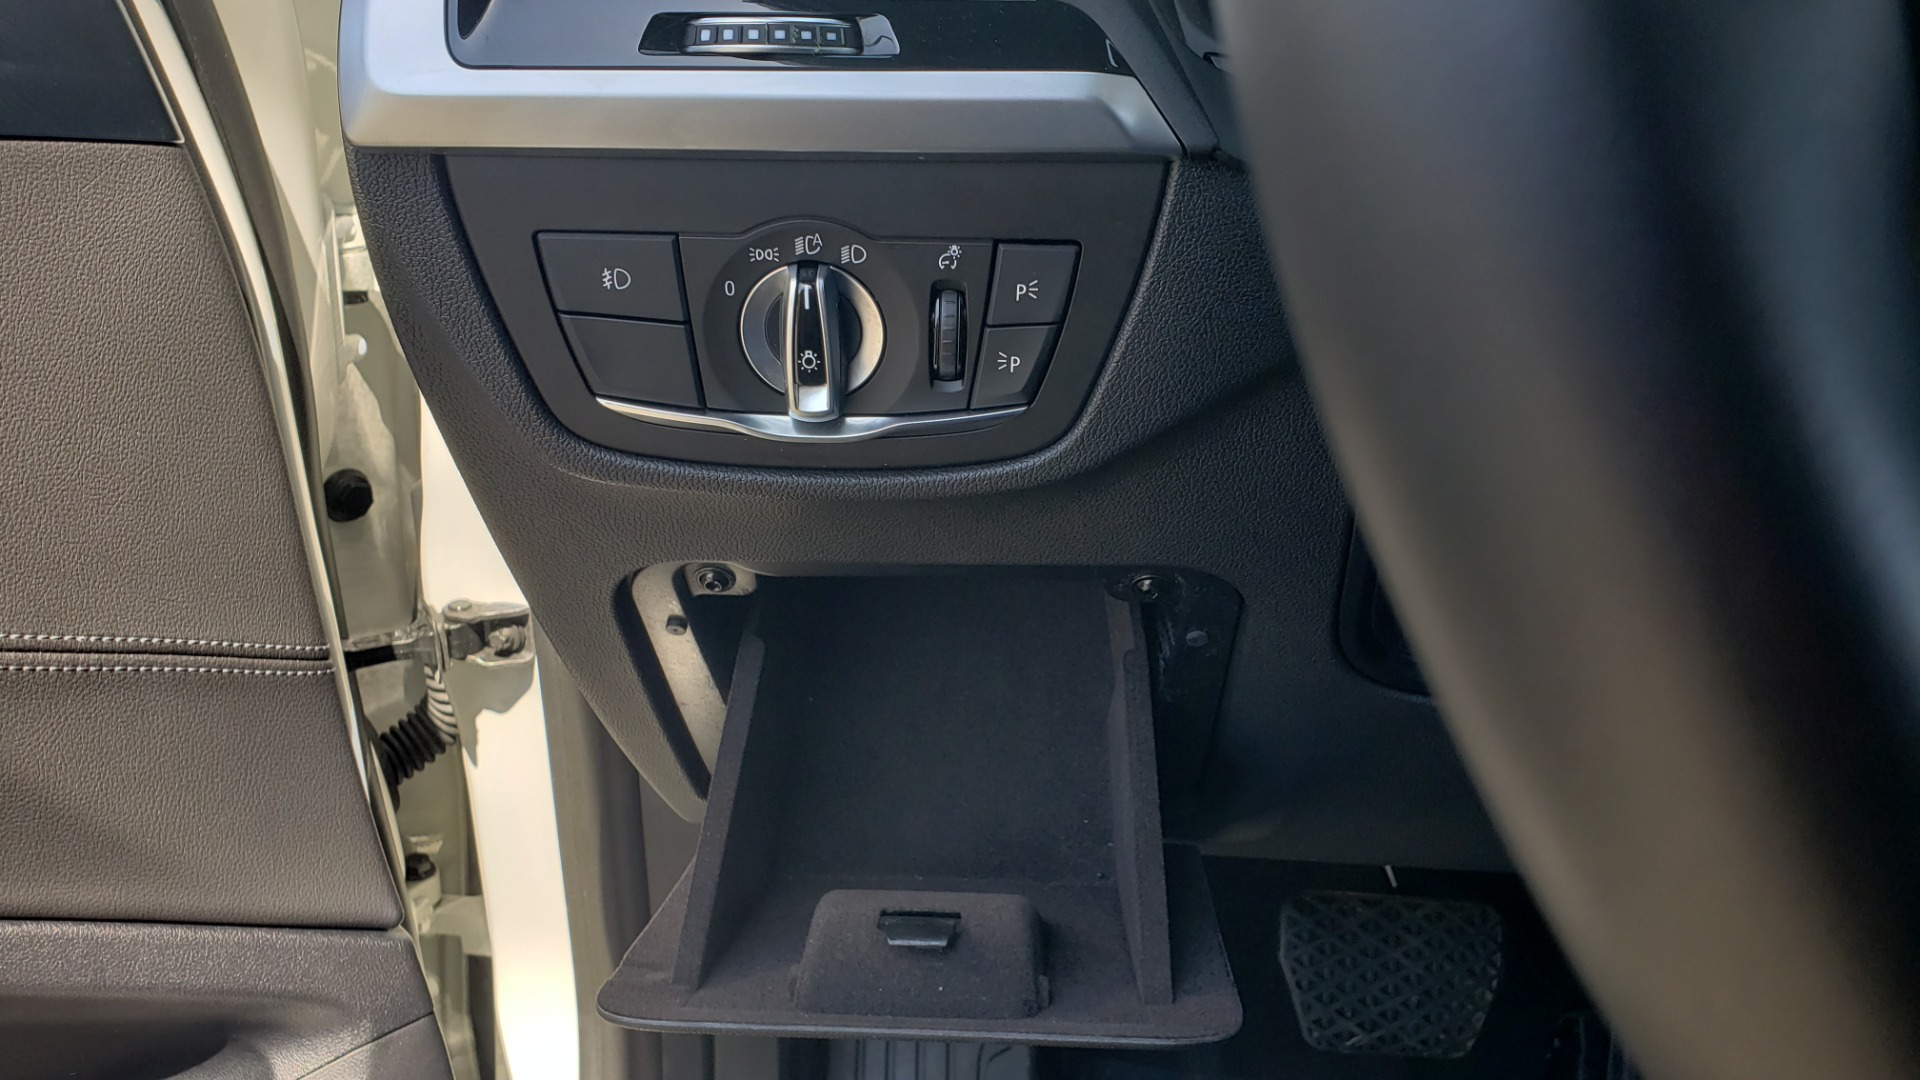 Used 2018 BMW X3 XDRIVE30I / CONV PKG / PANO-ROOF / HTD STS / REARVIEW for sale $33,995 at Formula Imports in Charlotte NC 28227 41